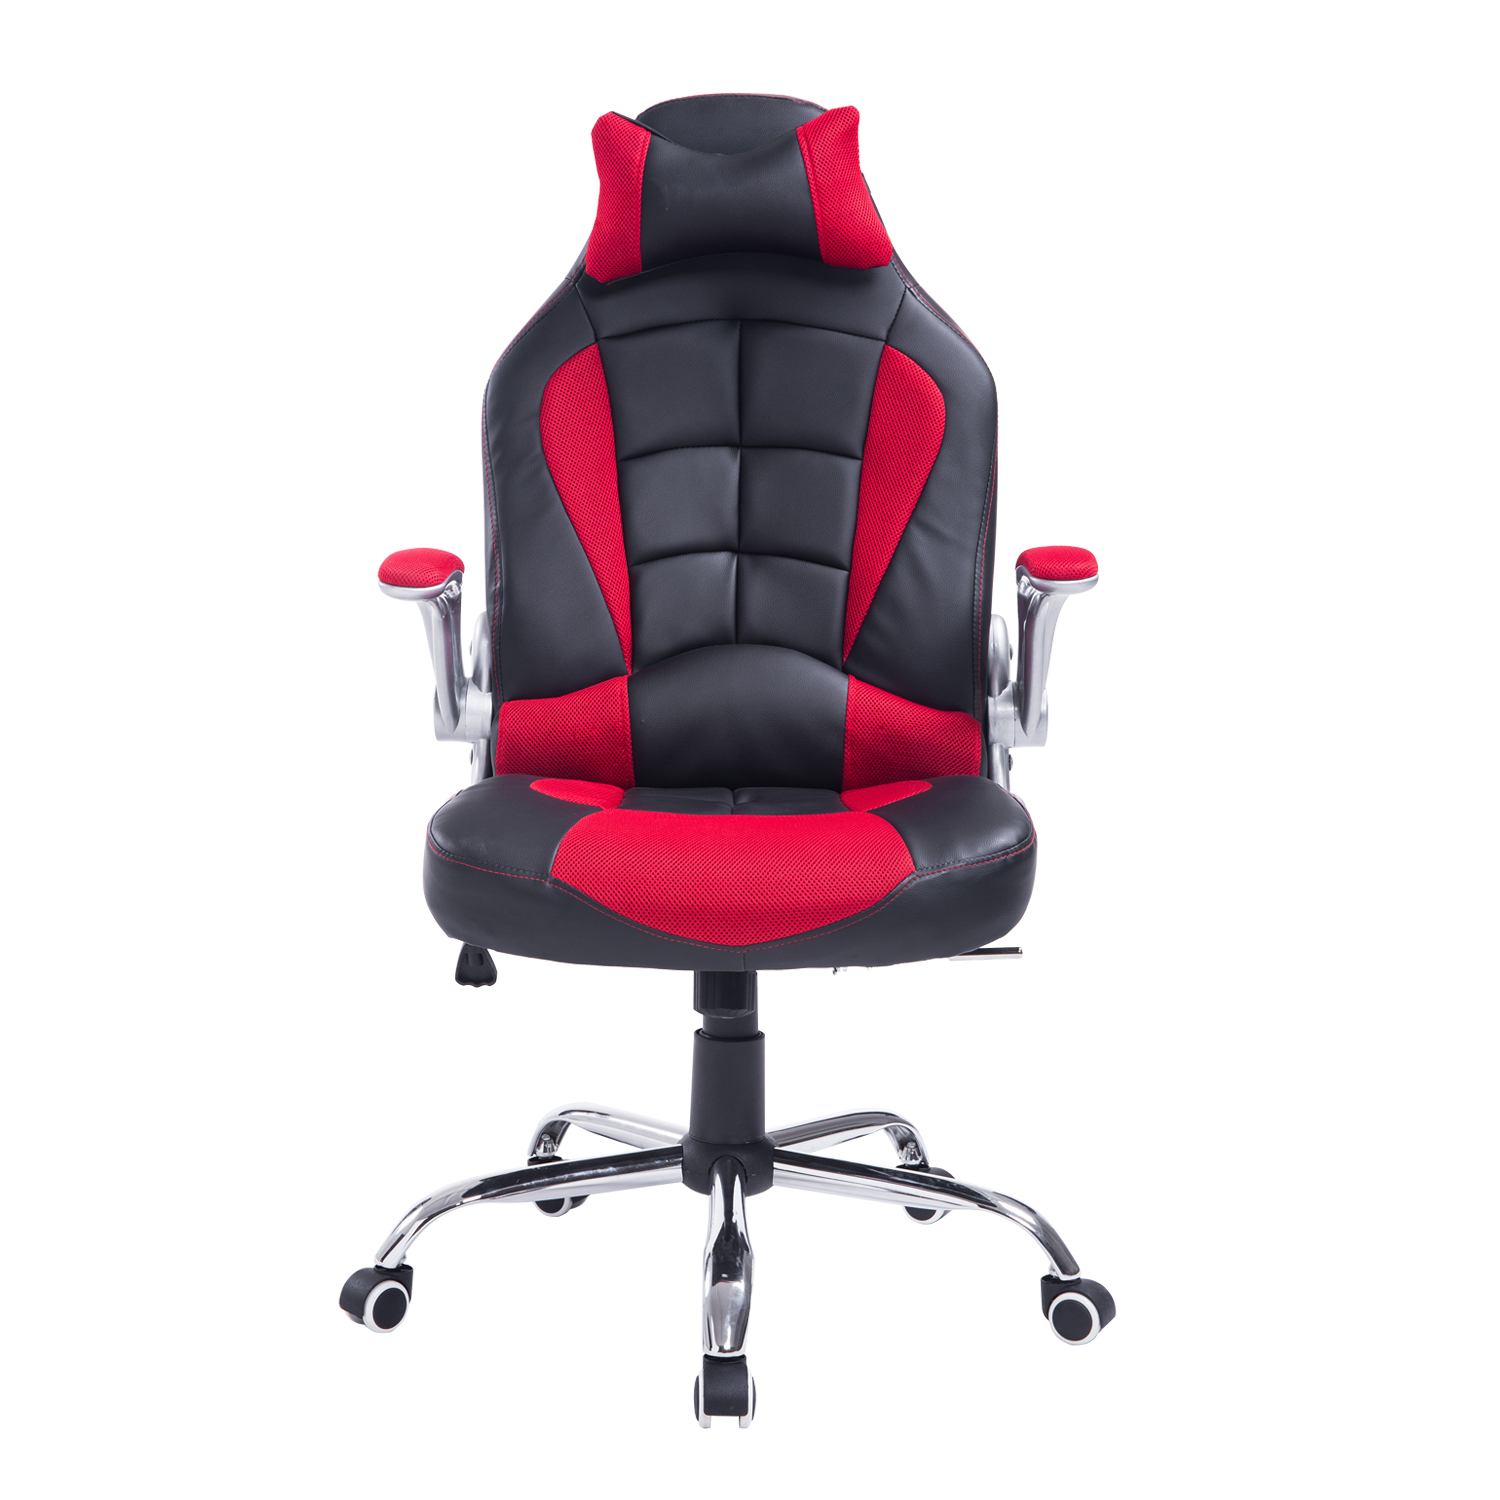 Racing Seat Office Chair Homcom Racing Style Gaming Office Chair Black Red